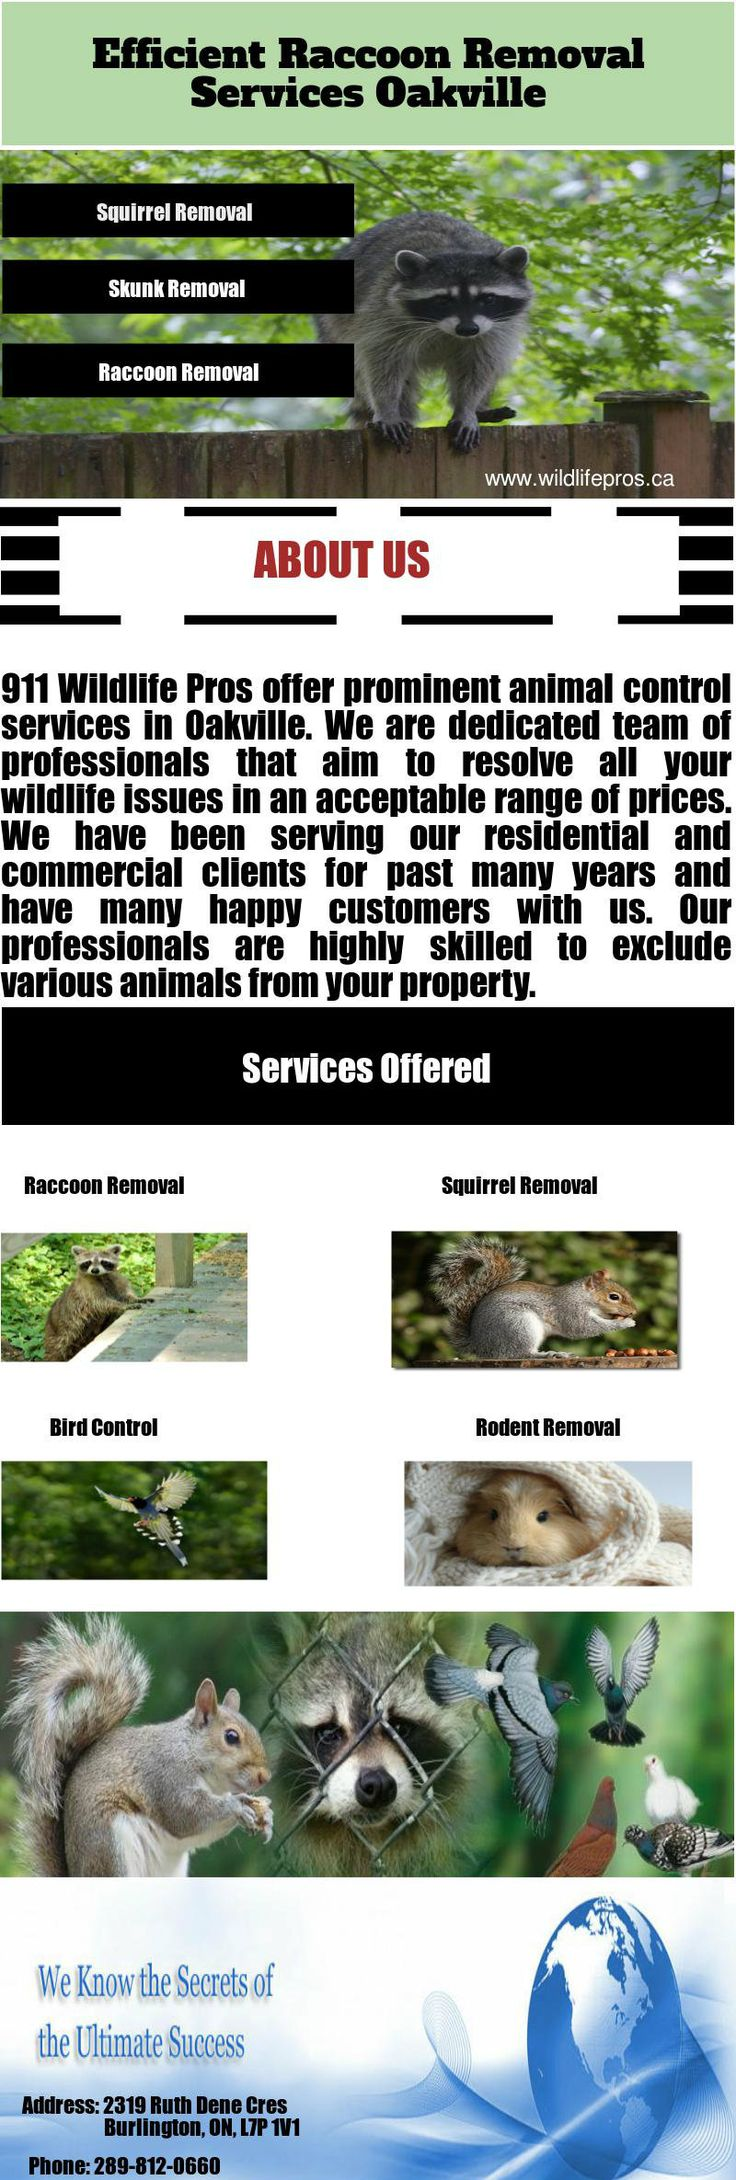 The animals that infiltrate into your residential or commercial sites can harm your property as well as can pose a serious threat to your family too. We at 911 Wildlife Pros offer superior animal removal services to our clients. We have years of experience and have solved numerous wildlife removal cases. Visit http://www.wildlifepros.ca/ to know further about our services.